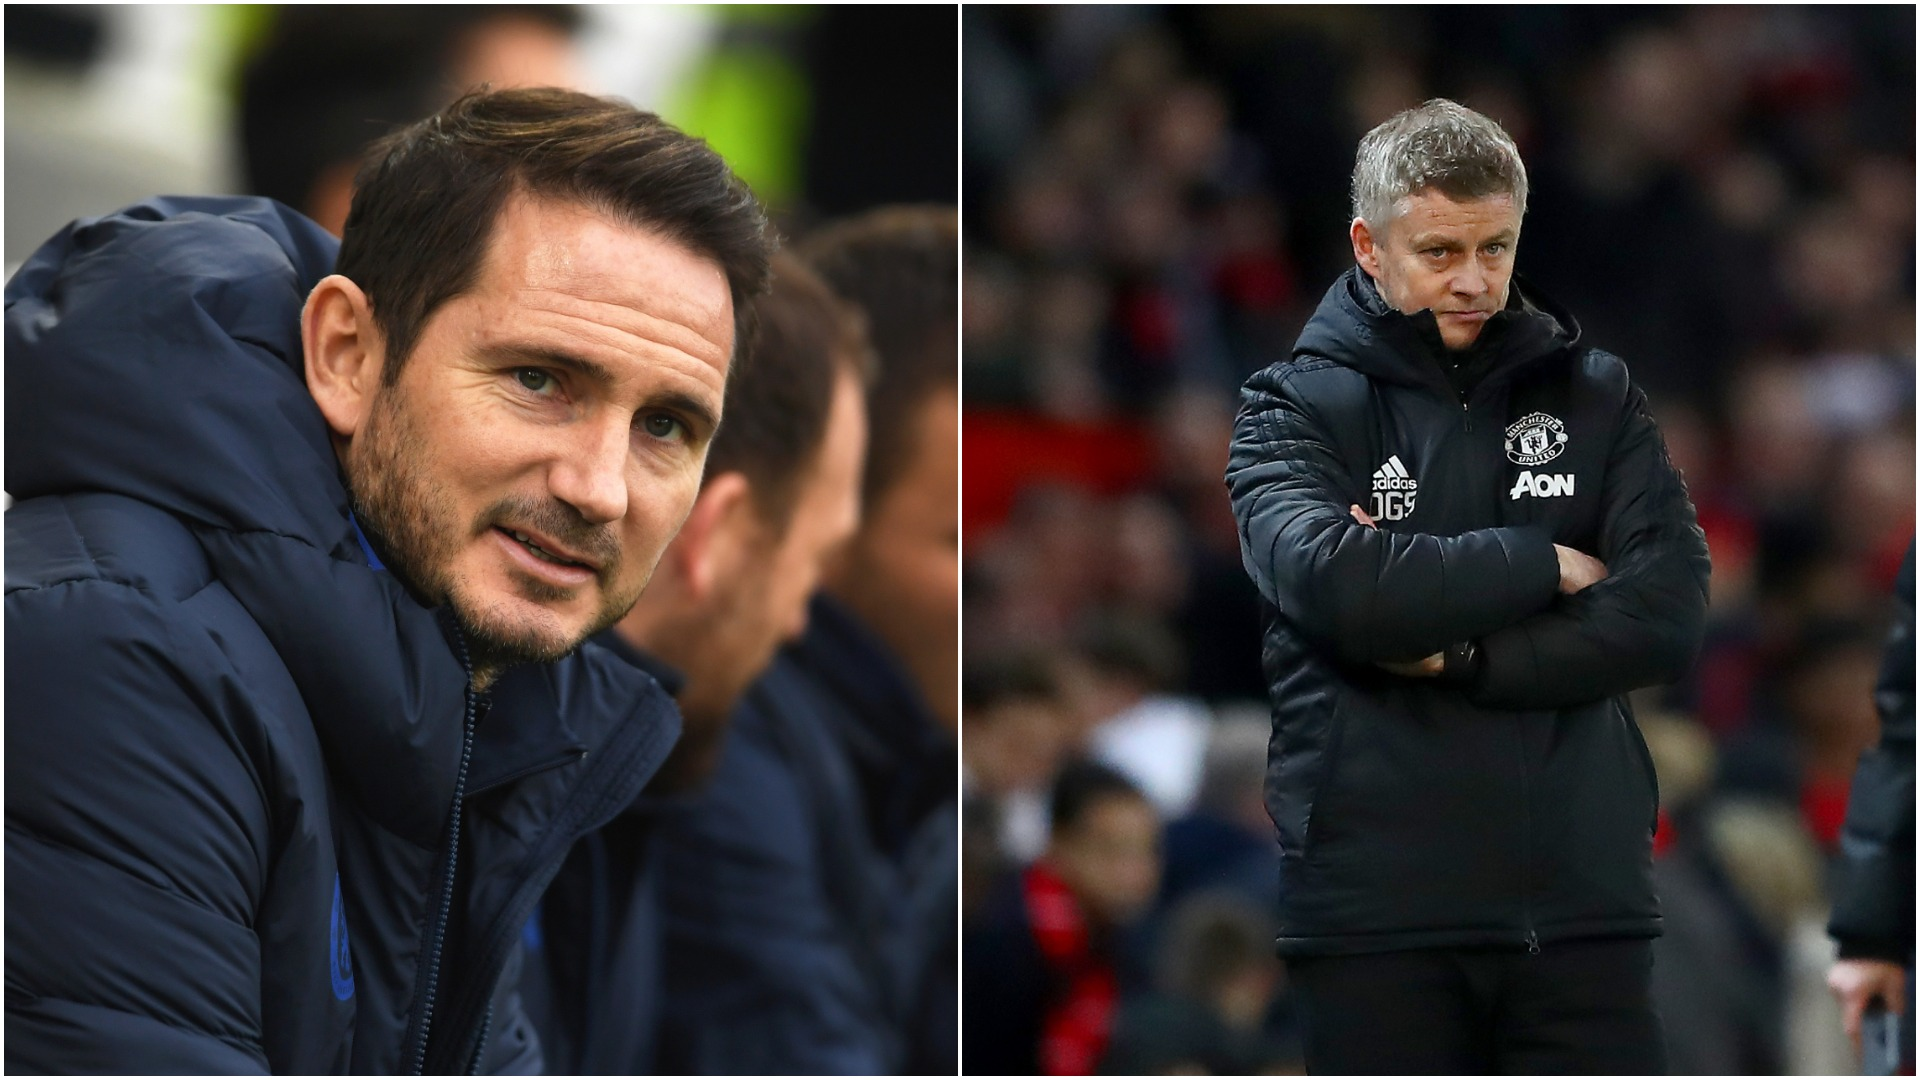 Chelsea v Man Utd: Why does Lampard get an easier ride than Solskjaer?